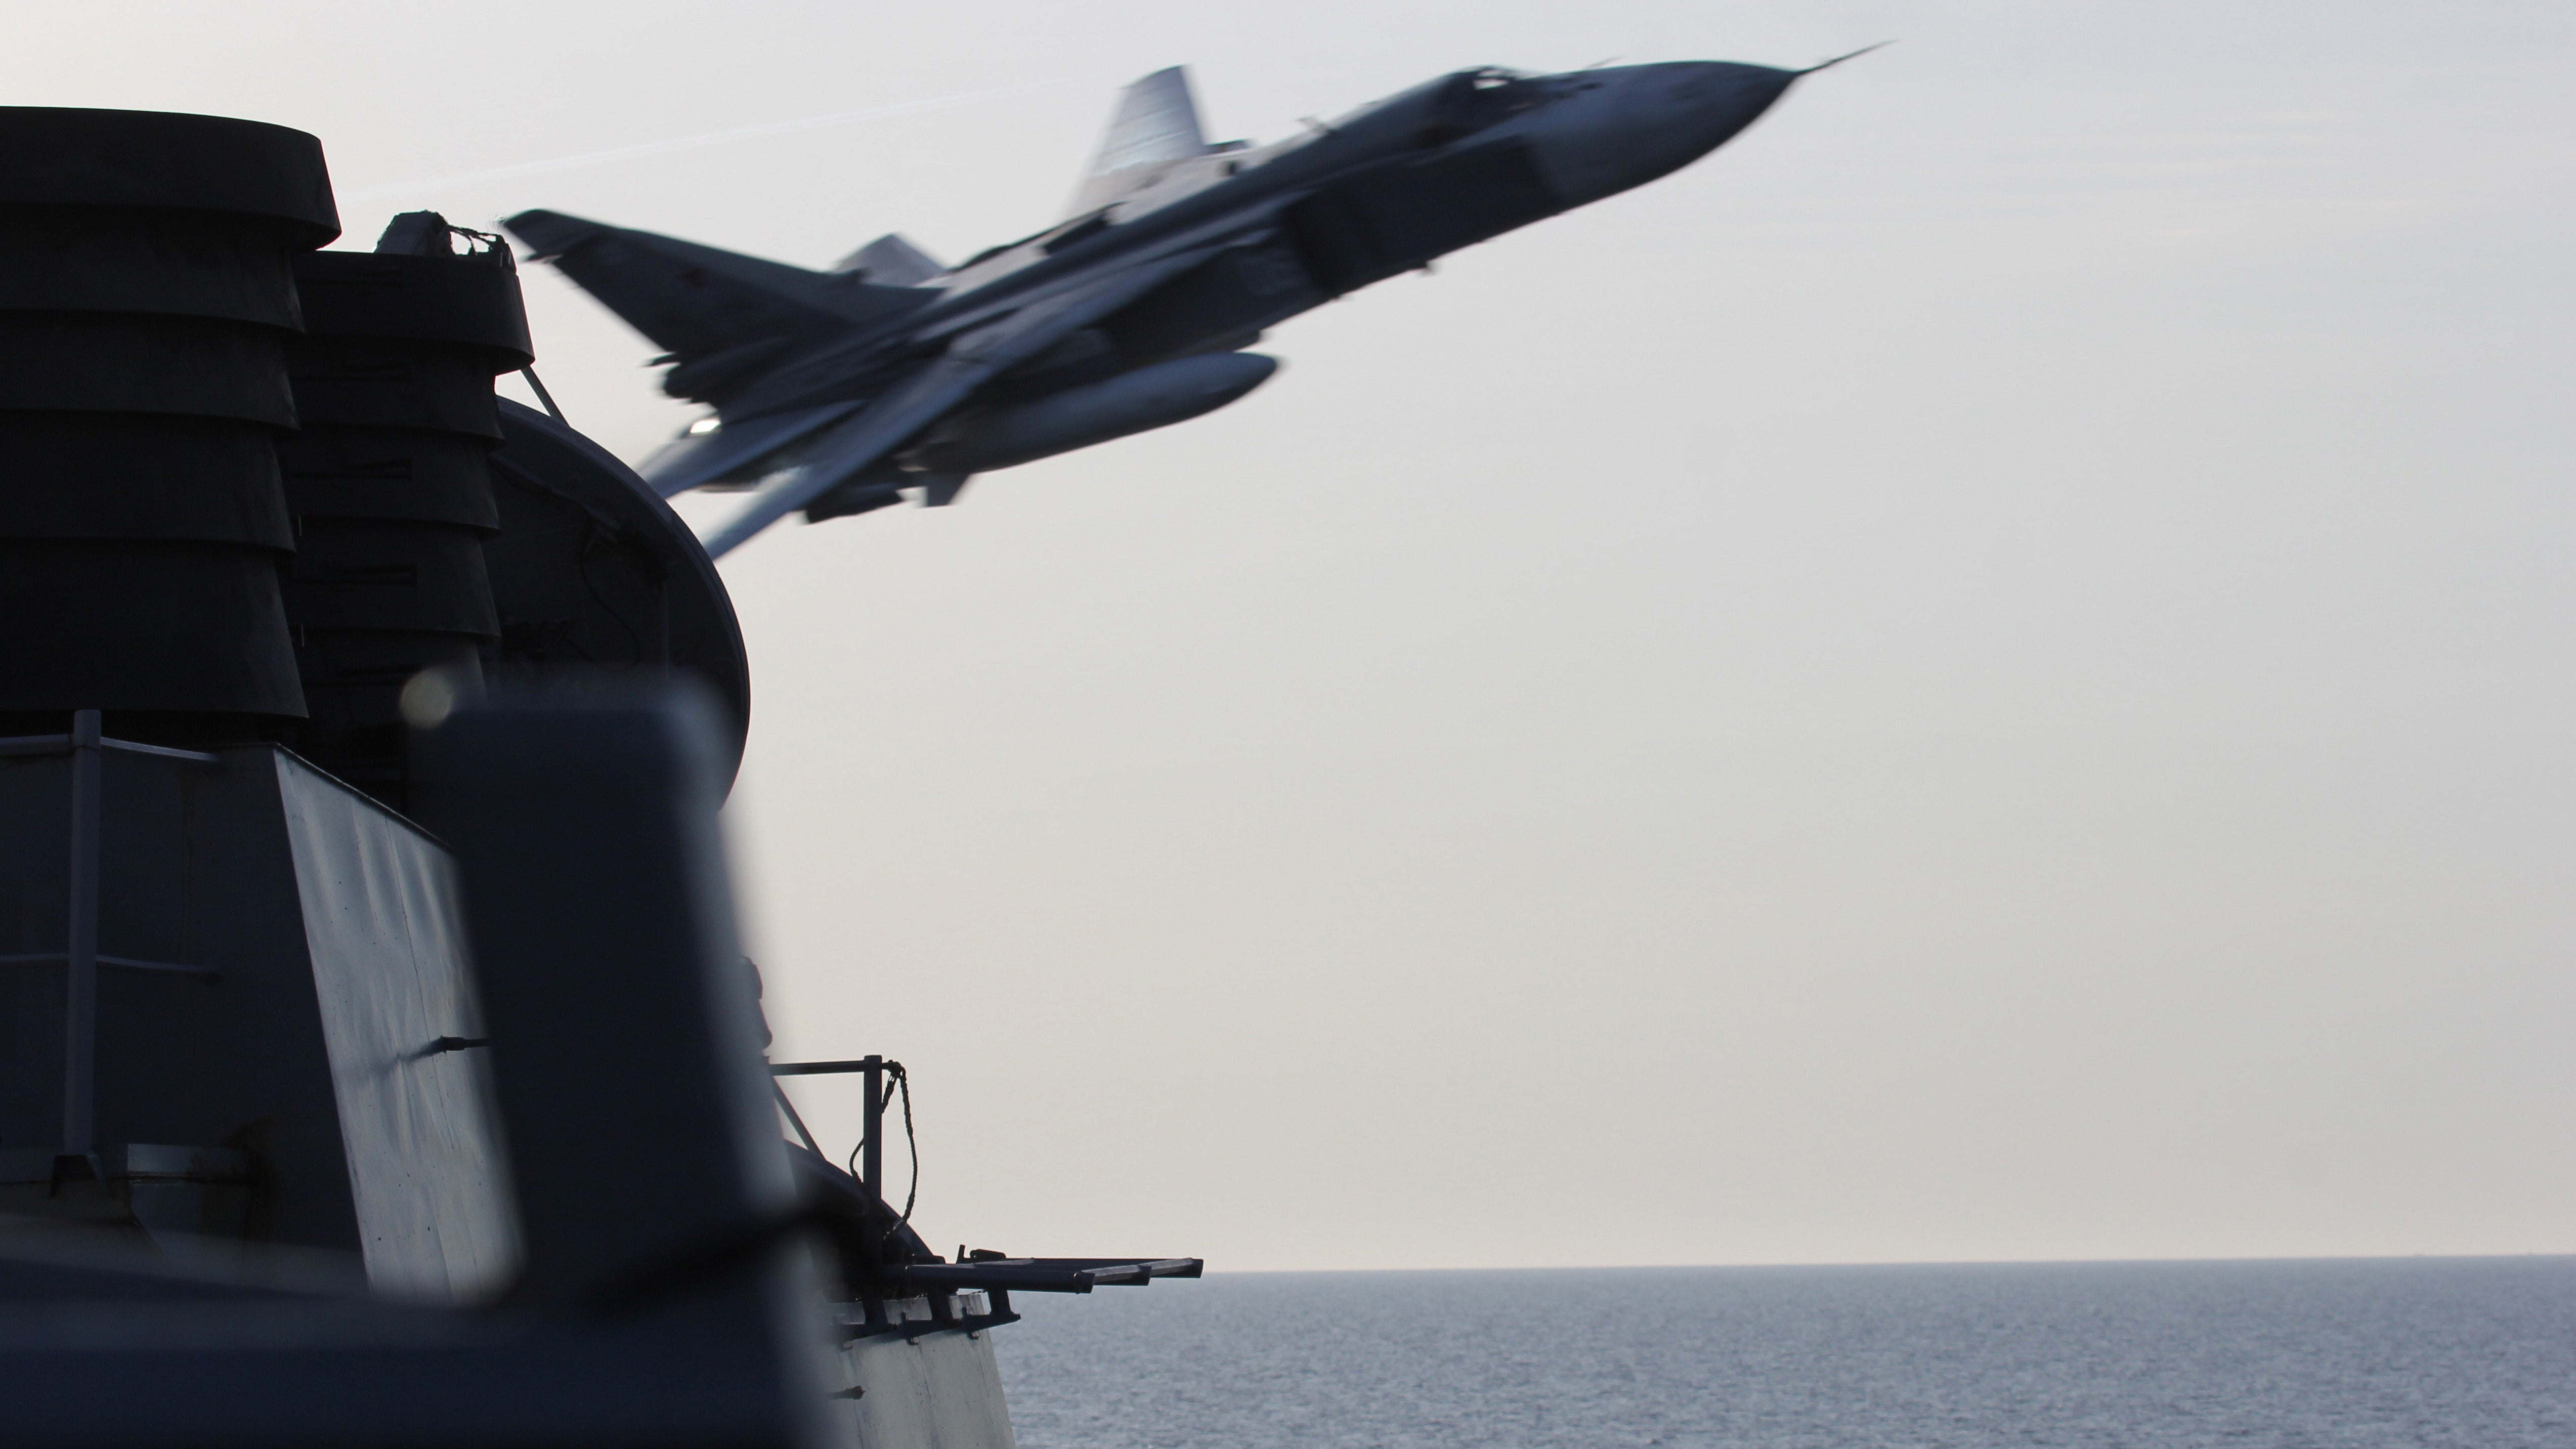 Russian Planes Just Came Really, Really Close To Hitting A US Navy Destroyer